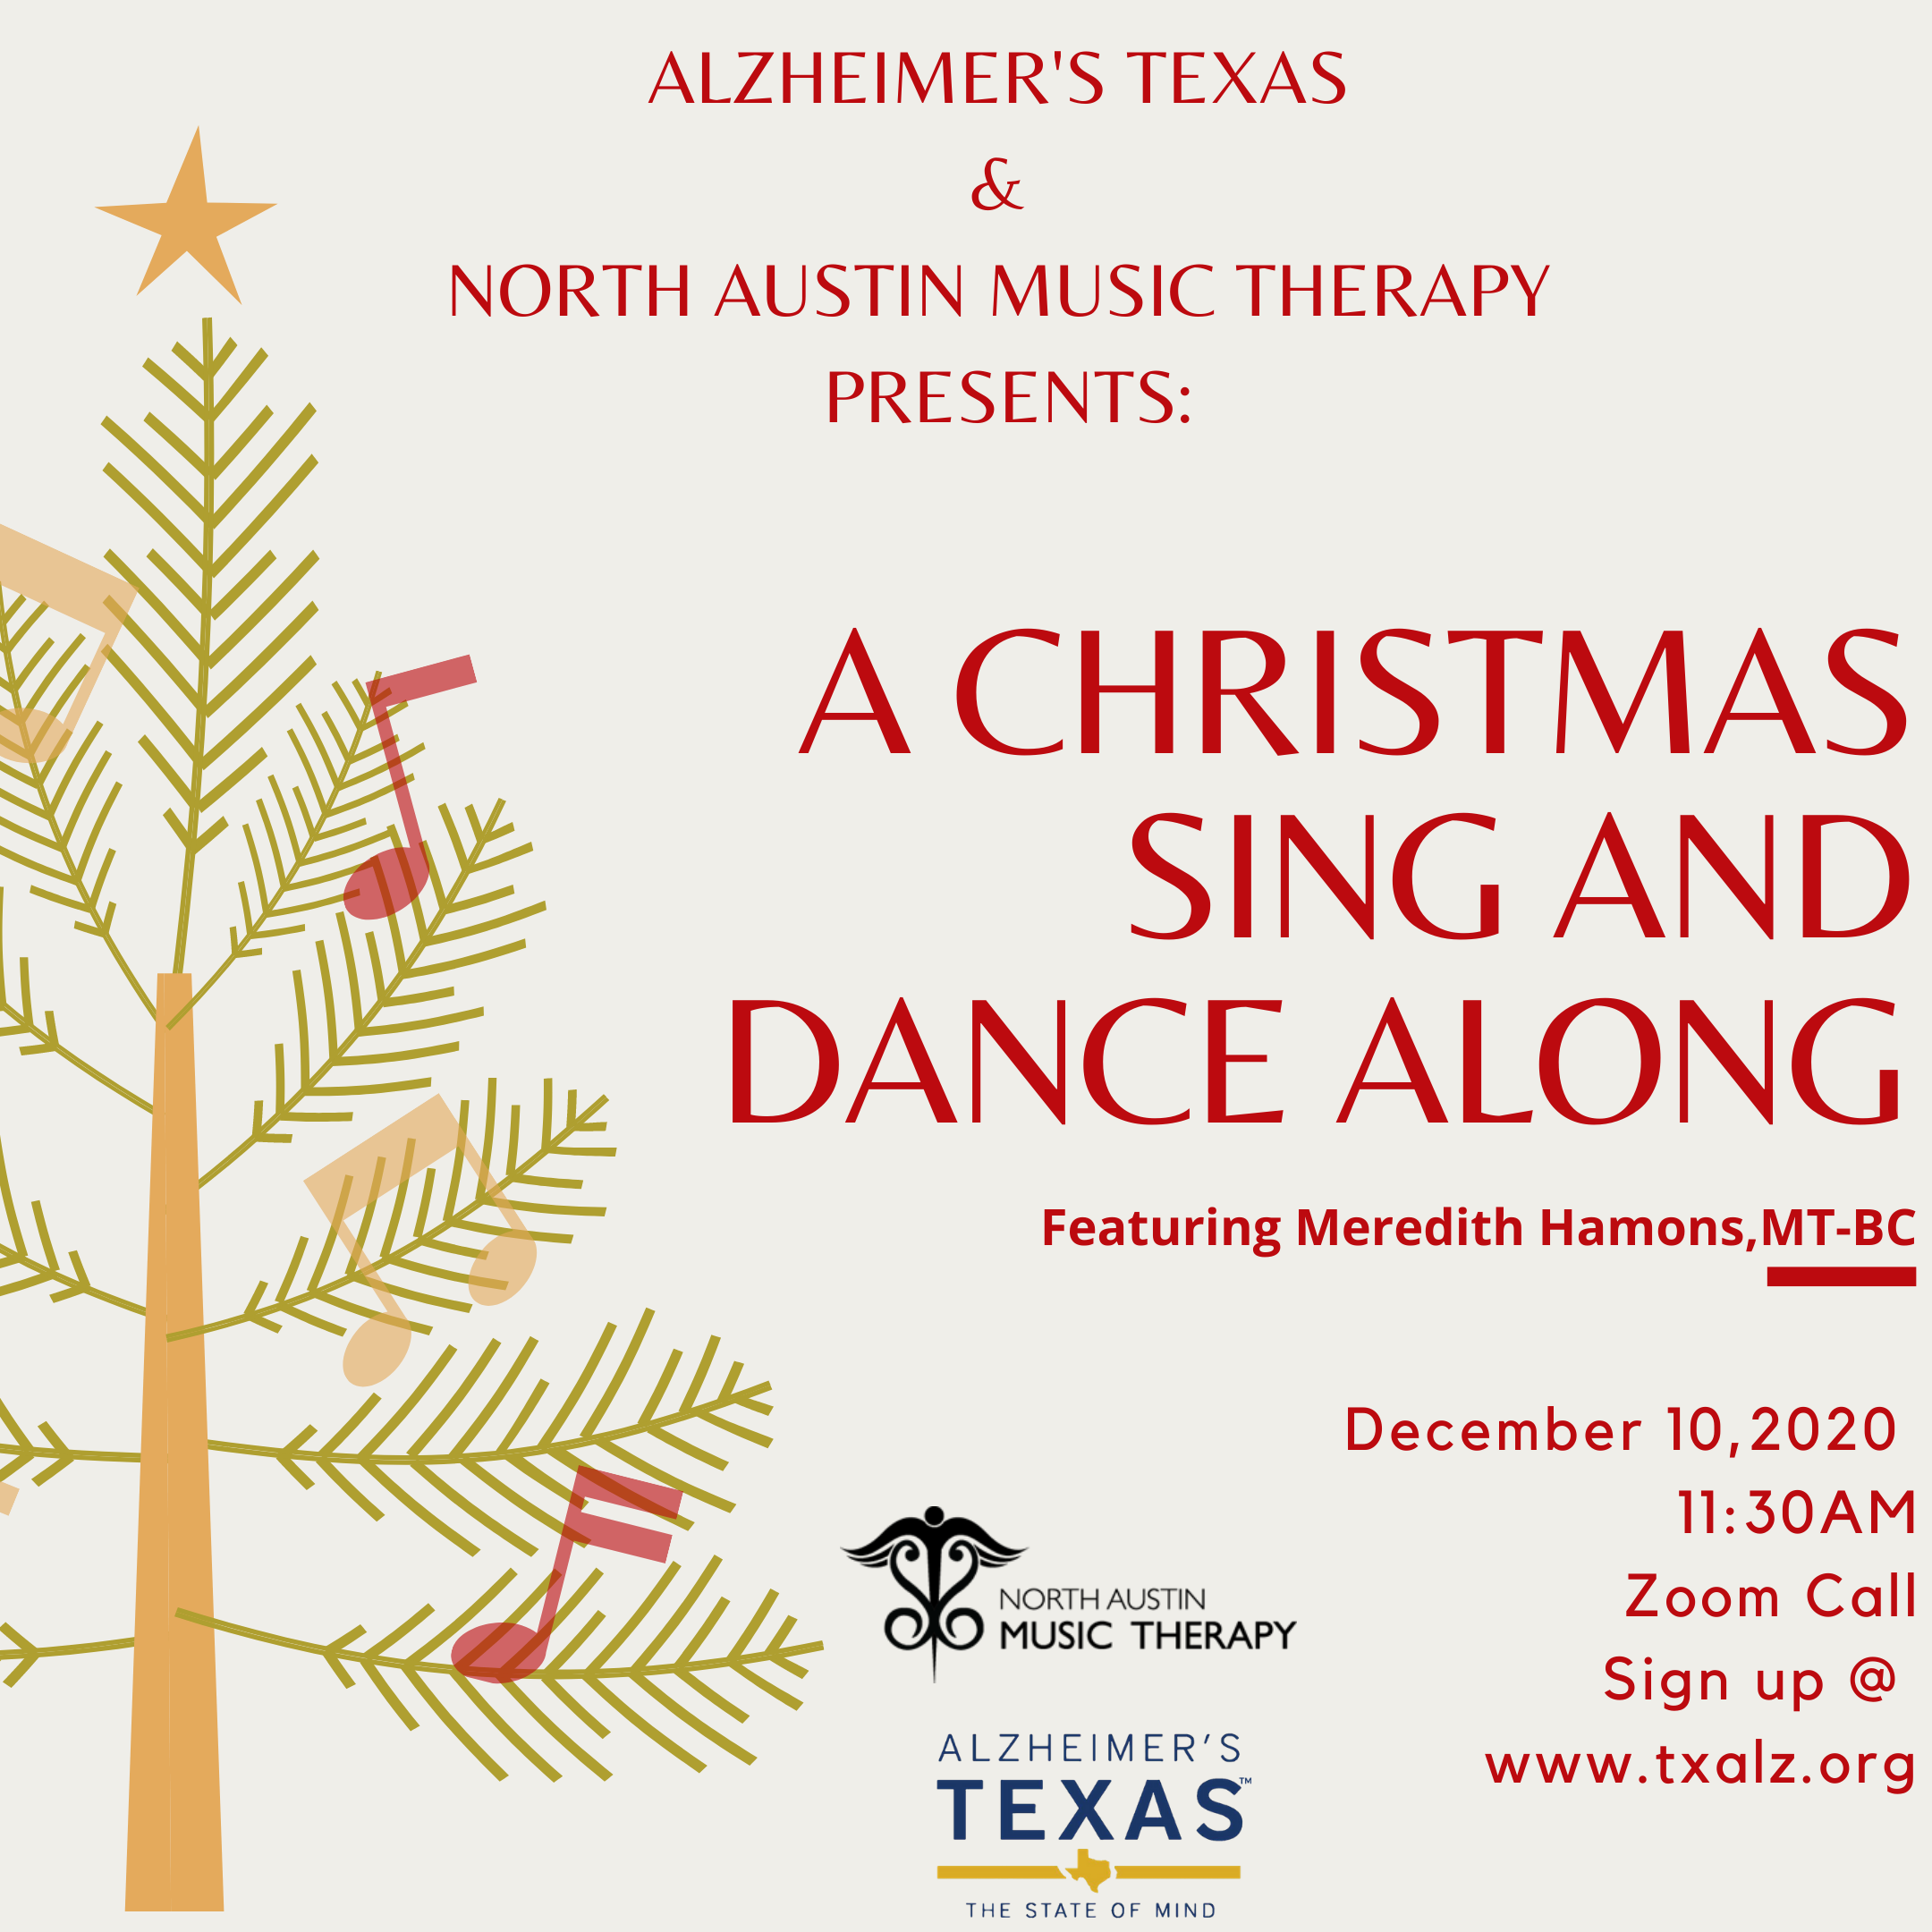 A Christmas Sing and Dance Along